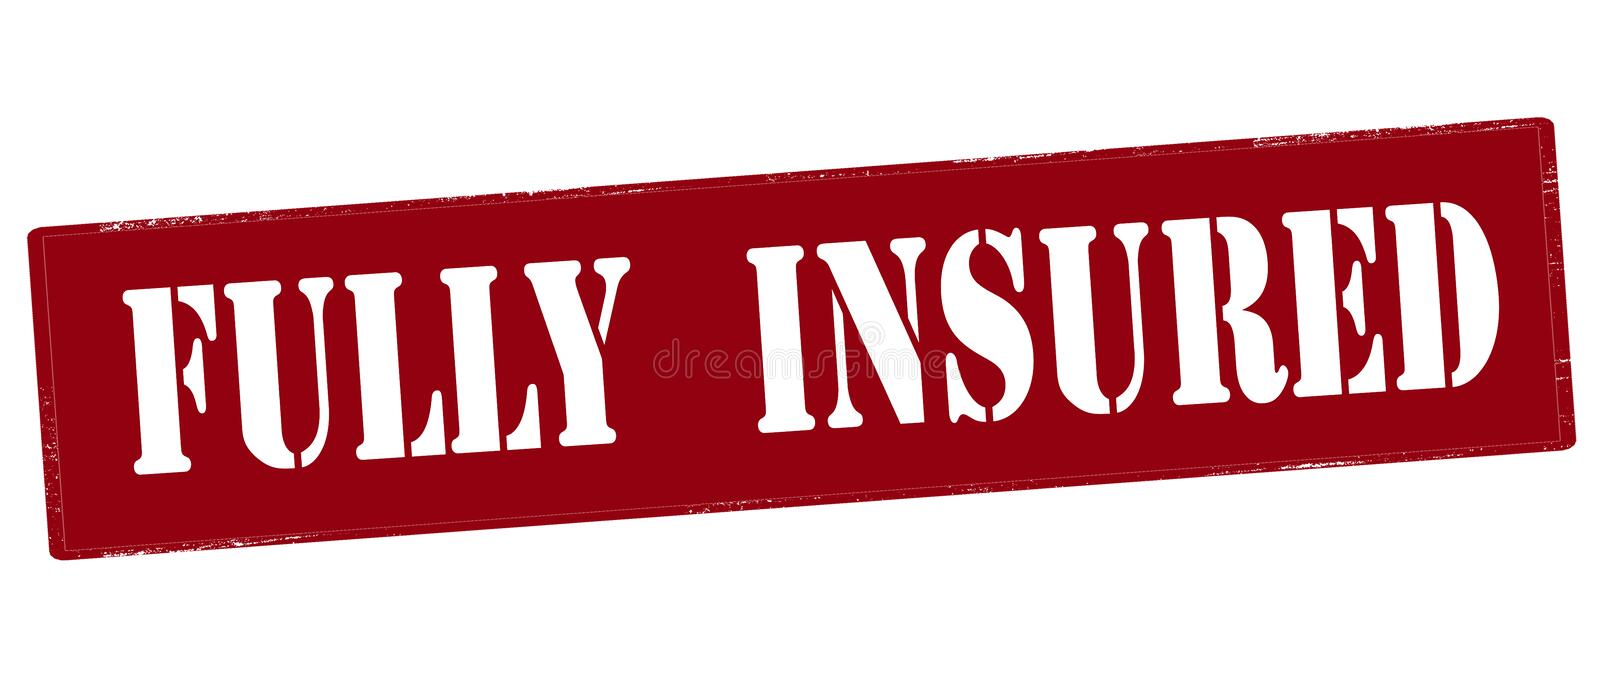 Fully insured. Stamp with text fully insured inside, illustration stock illustration